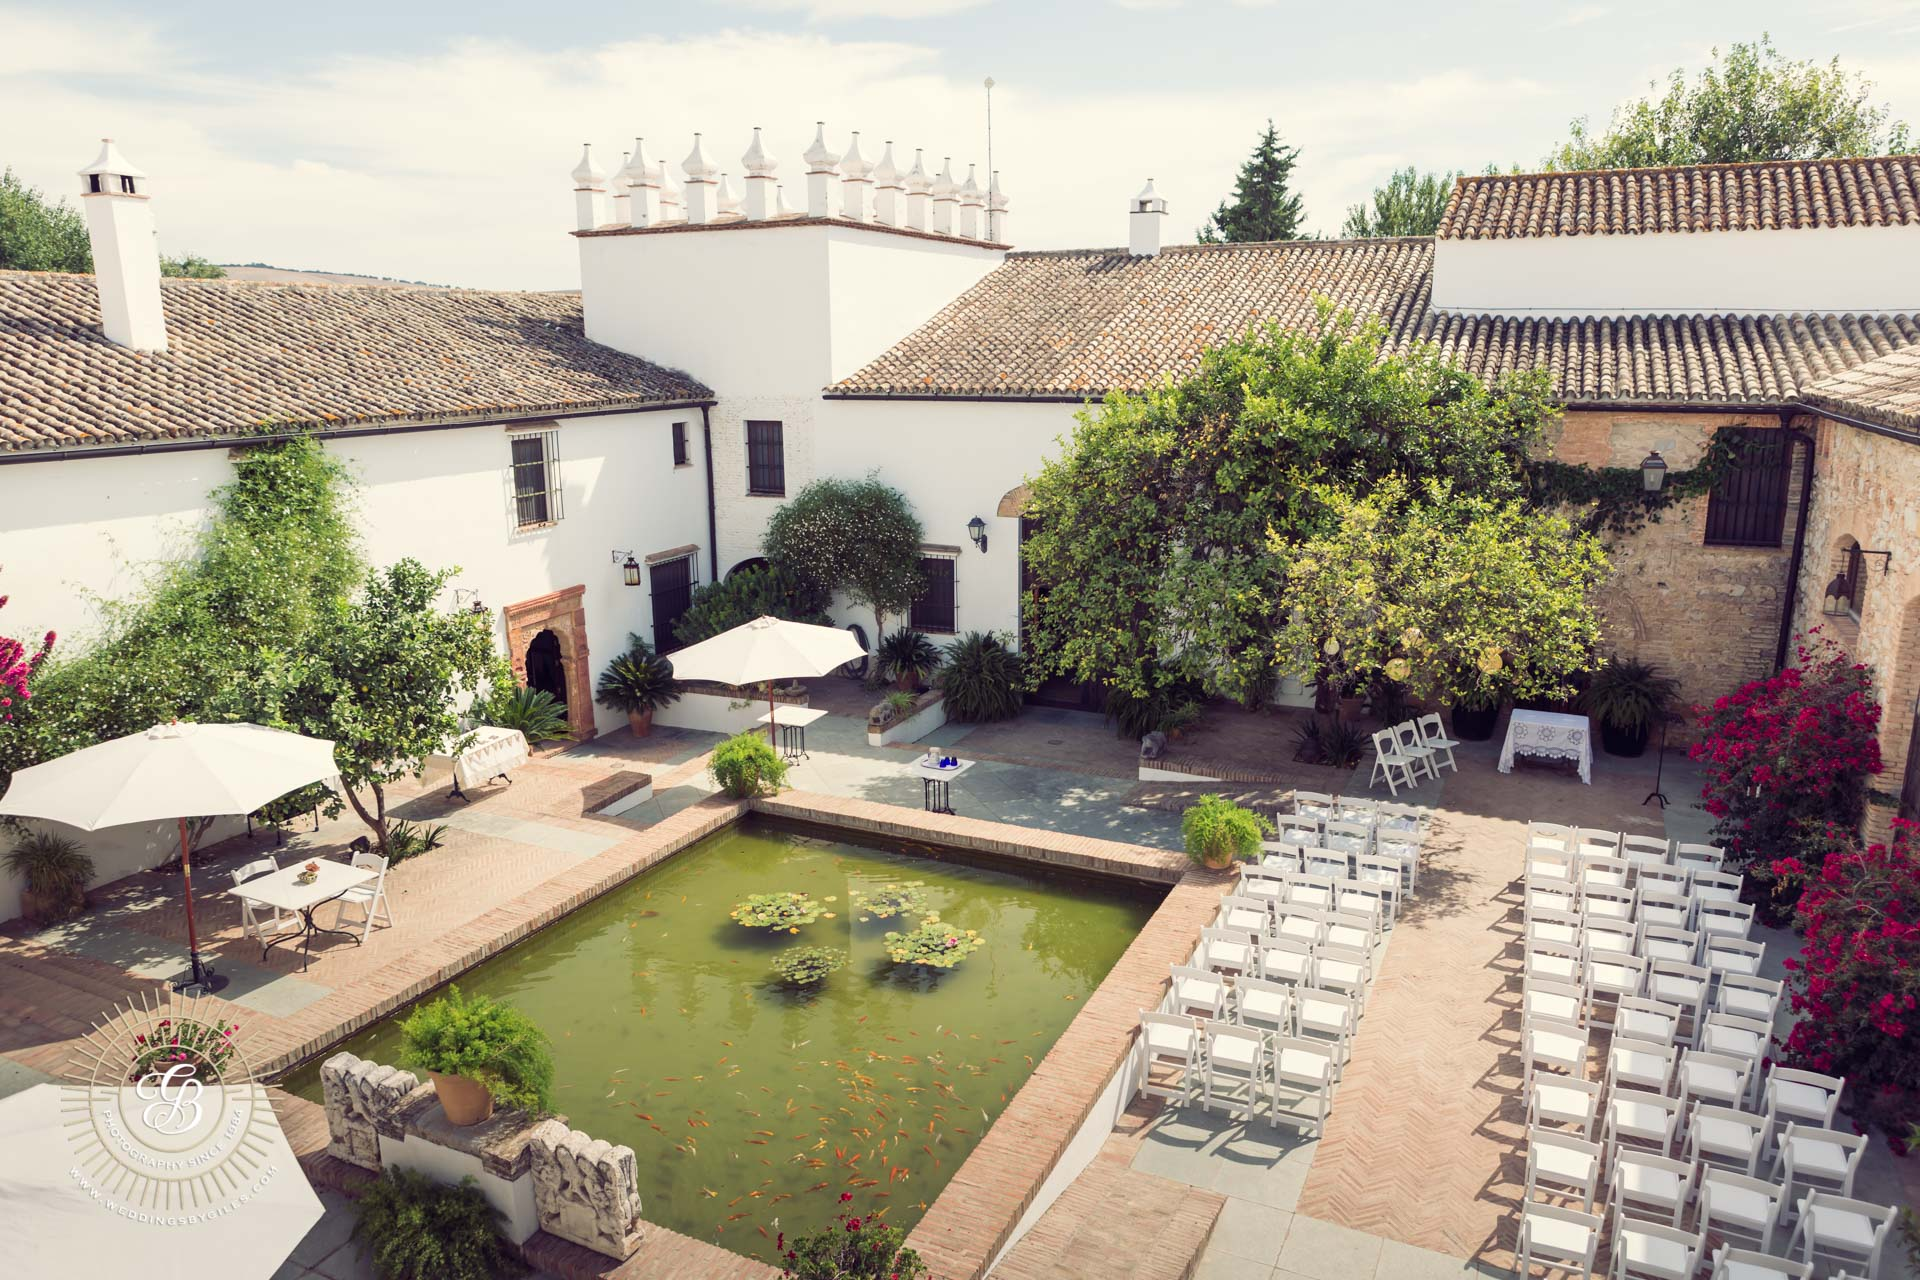 wedding setup in Andalucian courtyard